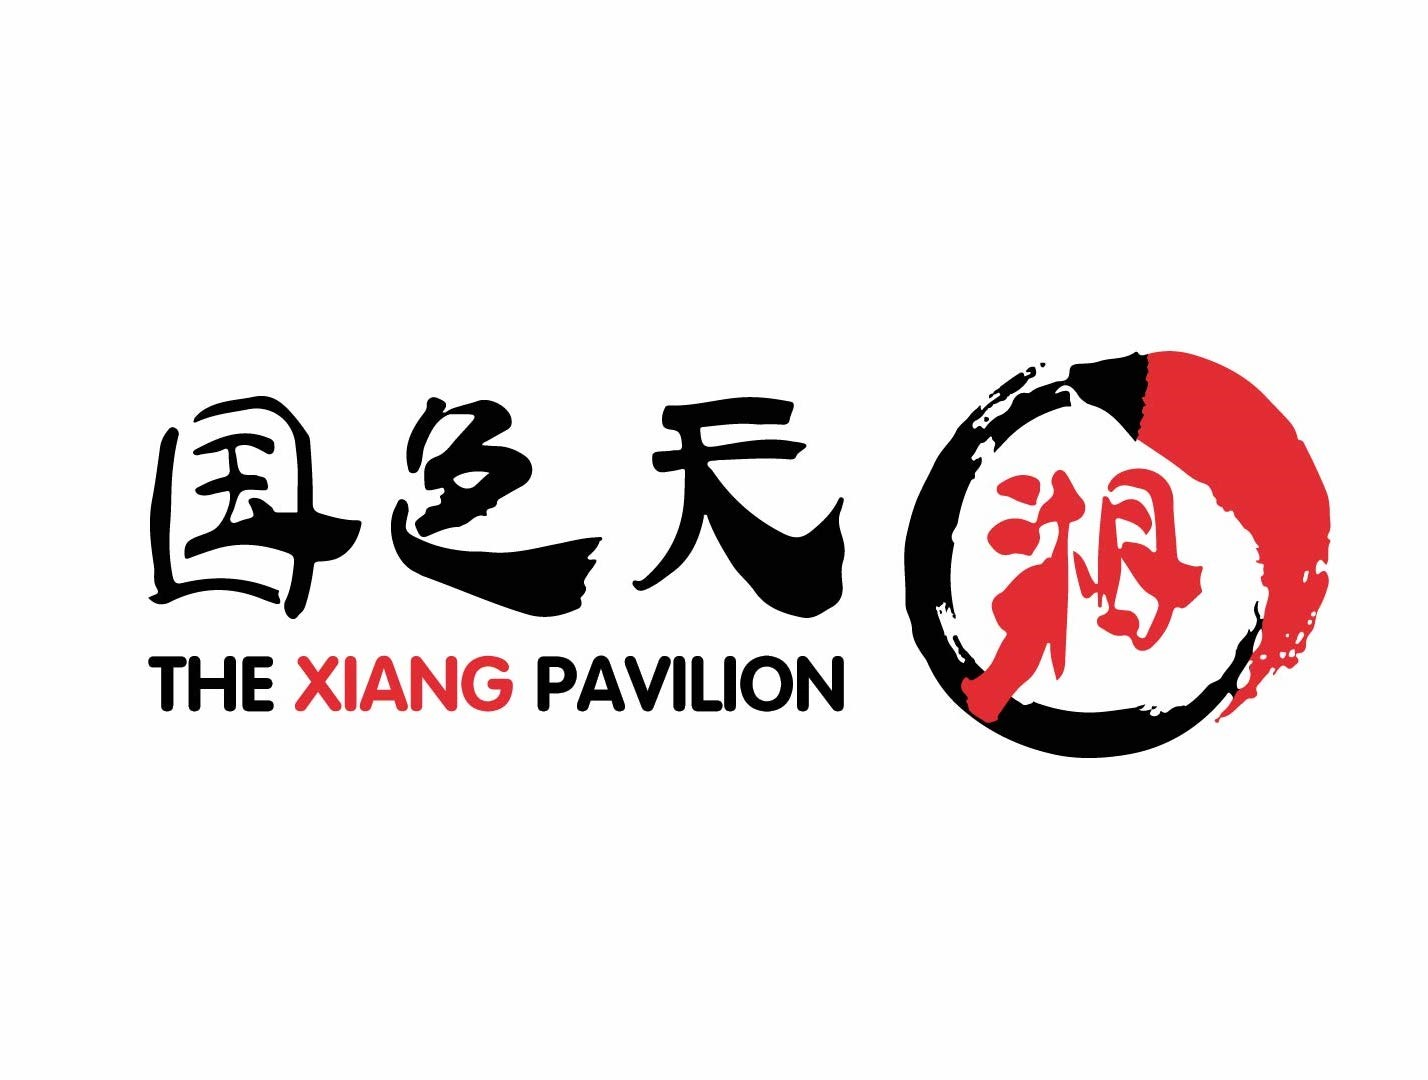 The Xiang Pavilion